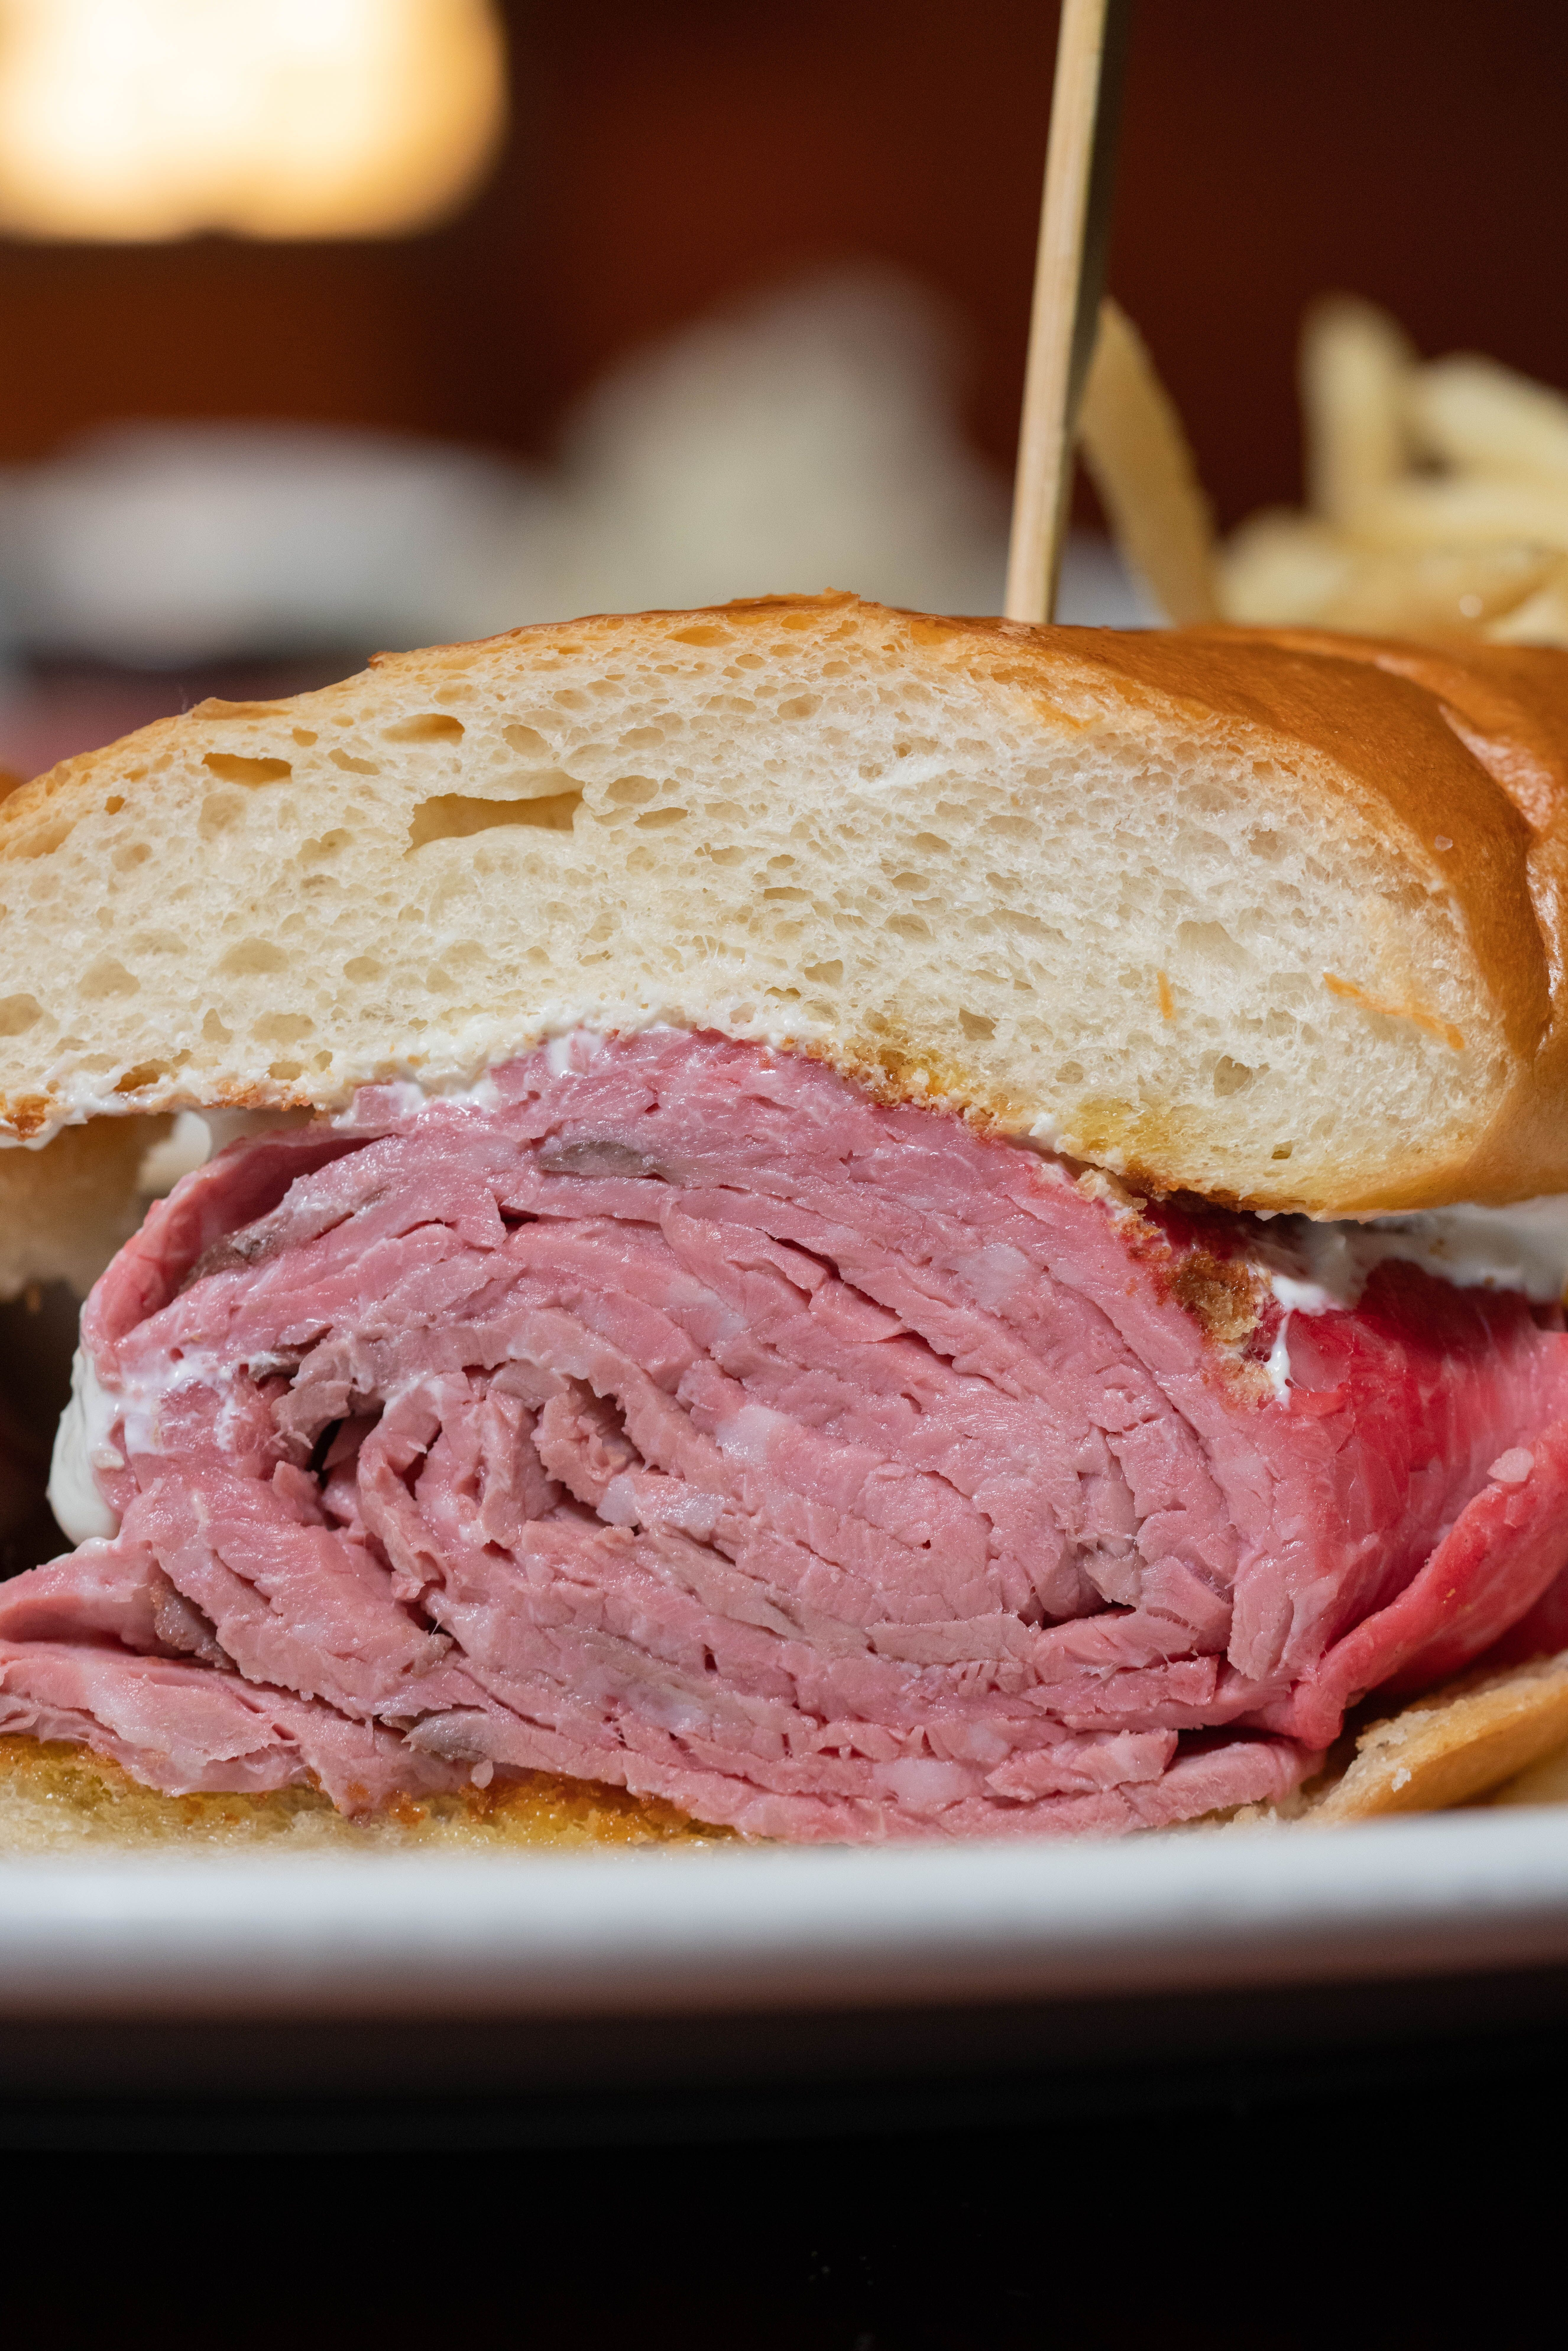 Famous French Dip French dip, Cuisine, American dishes